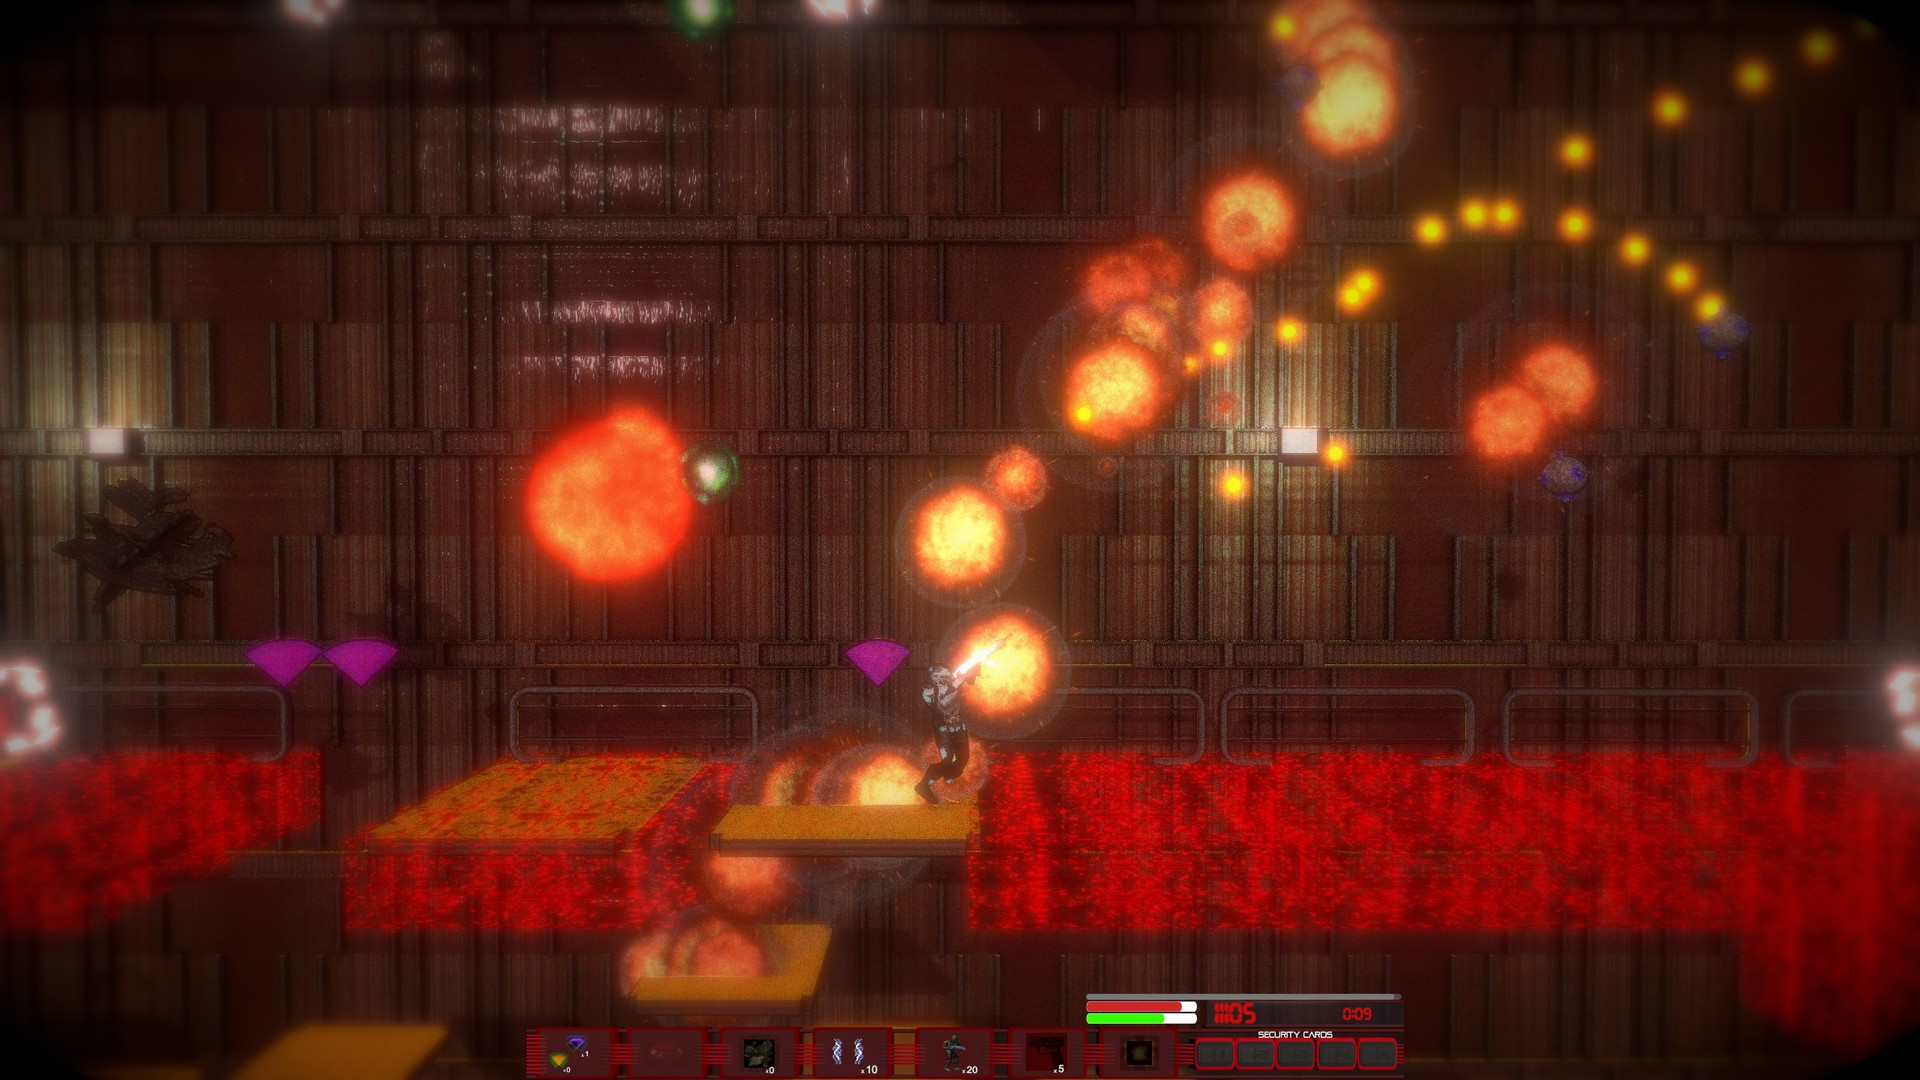 LazyGuysBundle –Steam game 2DGameManias Taken by 2DGameMania for Windows available in the Bundle 24: True Mind deal for a cheap price.